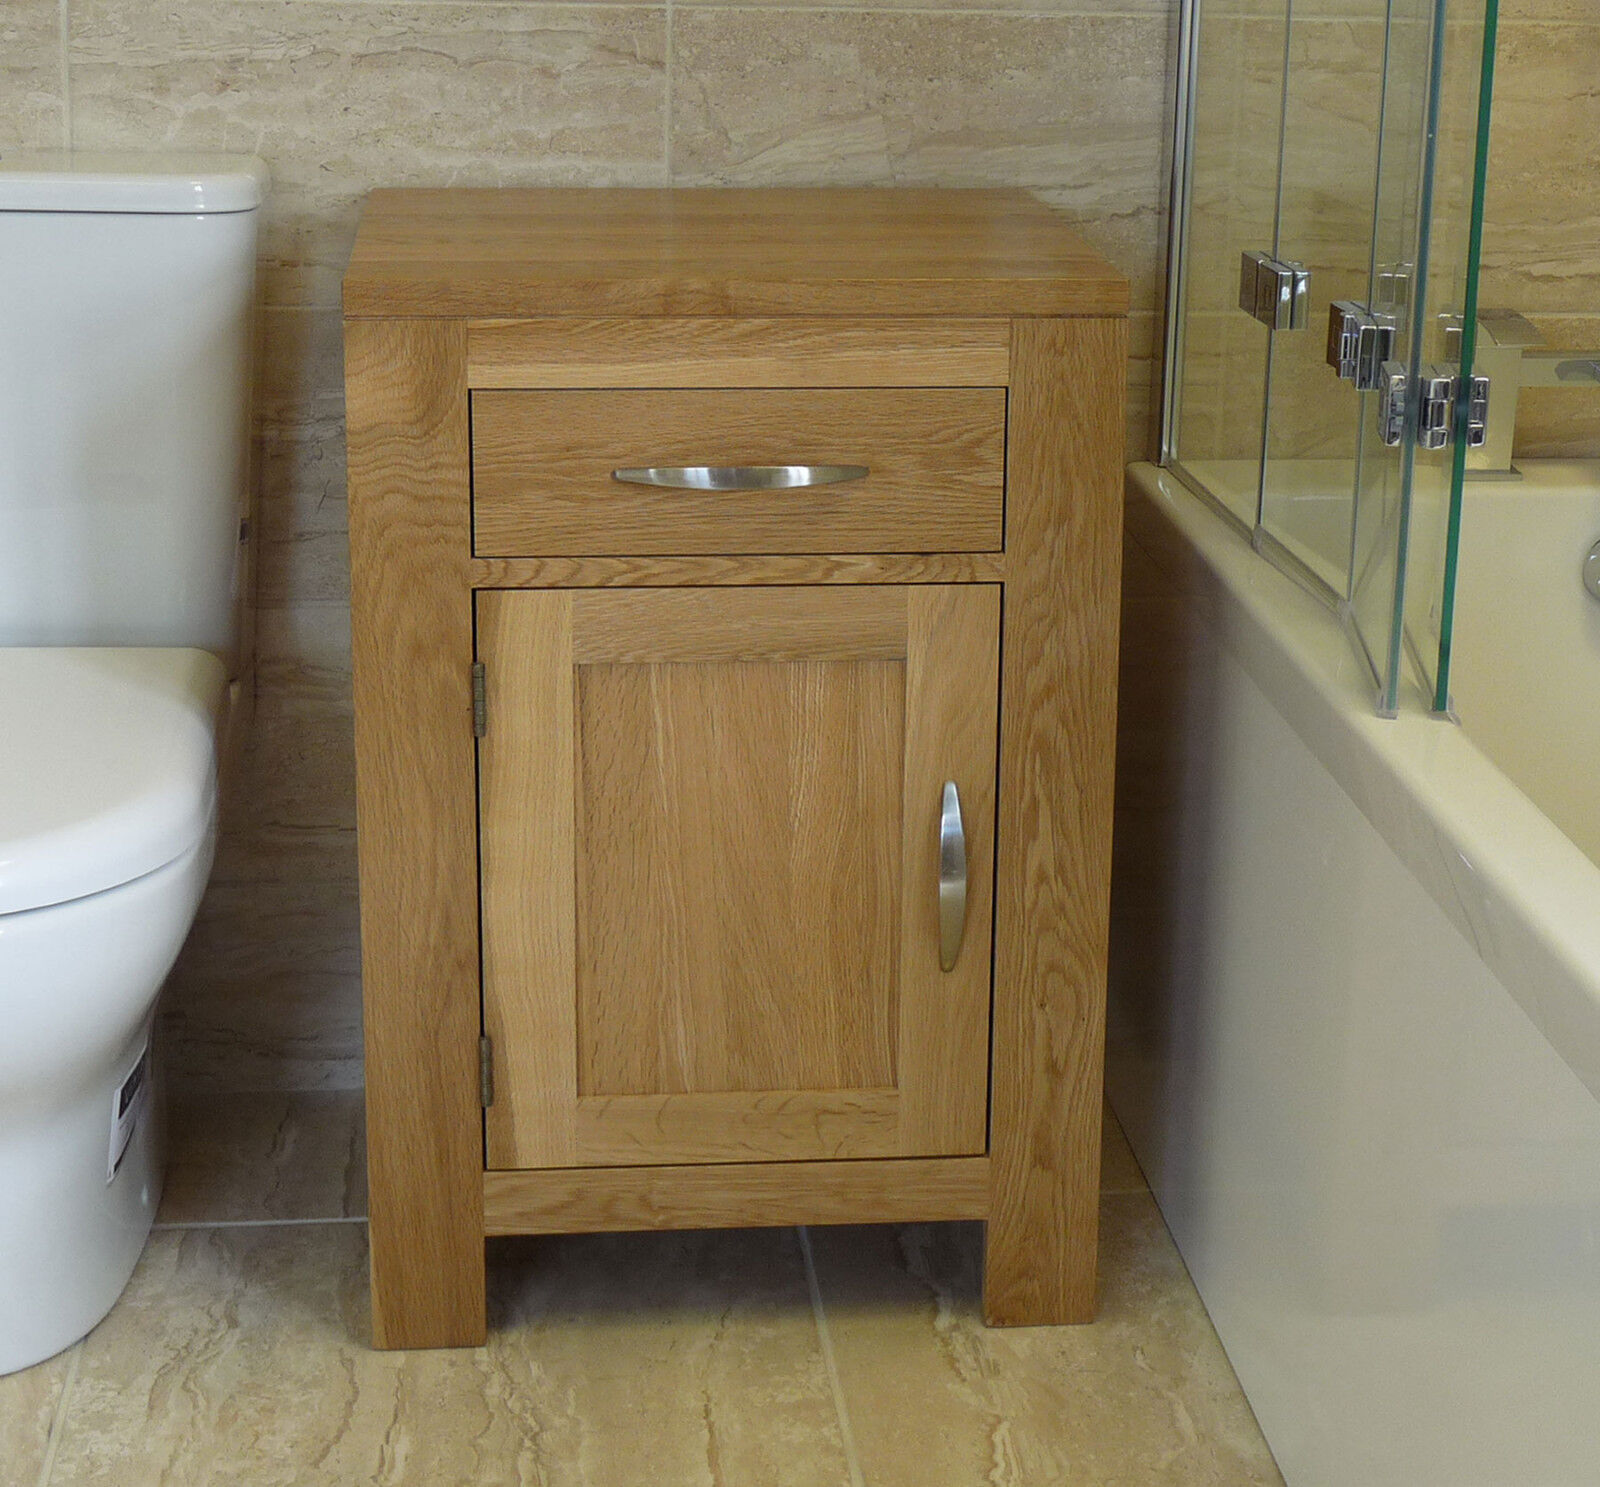 Solid oak bathroom furniture basin cabinet 60cm wide x for Bathroom cabinets 80cm wide